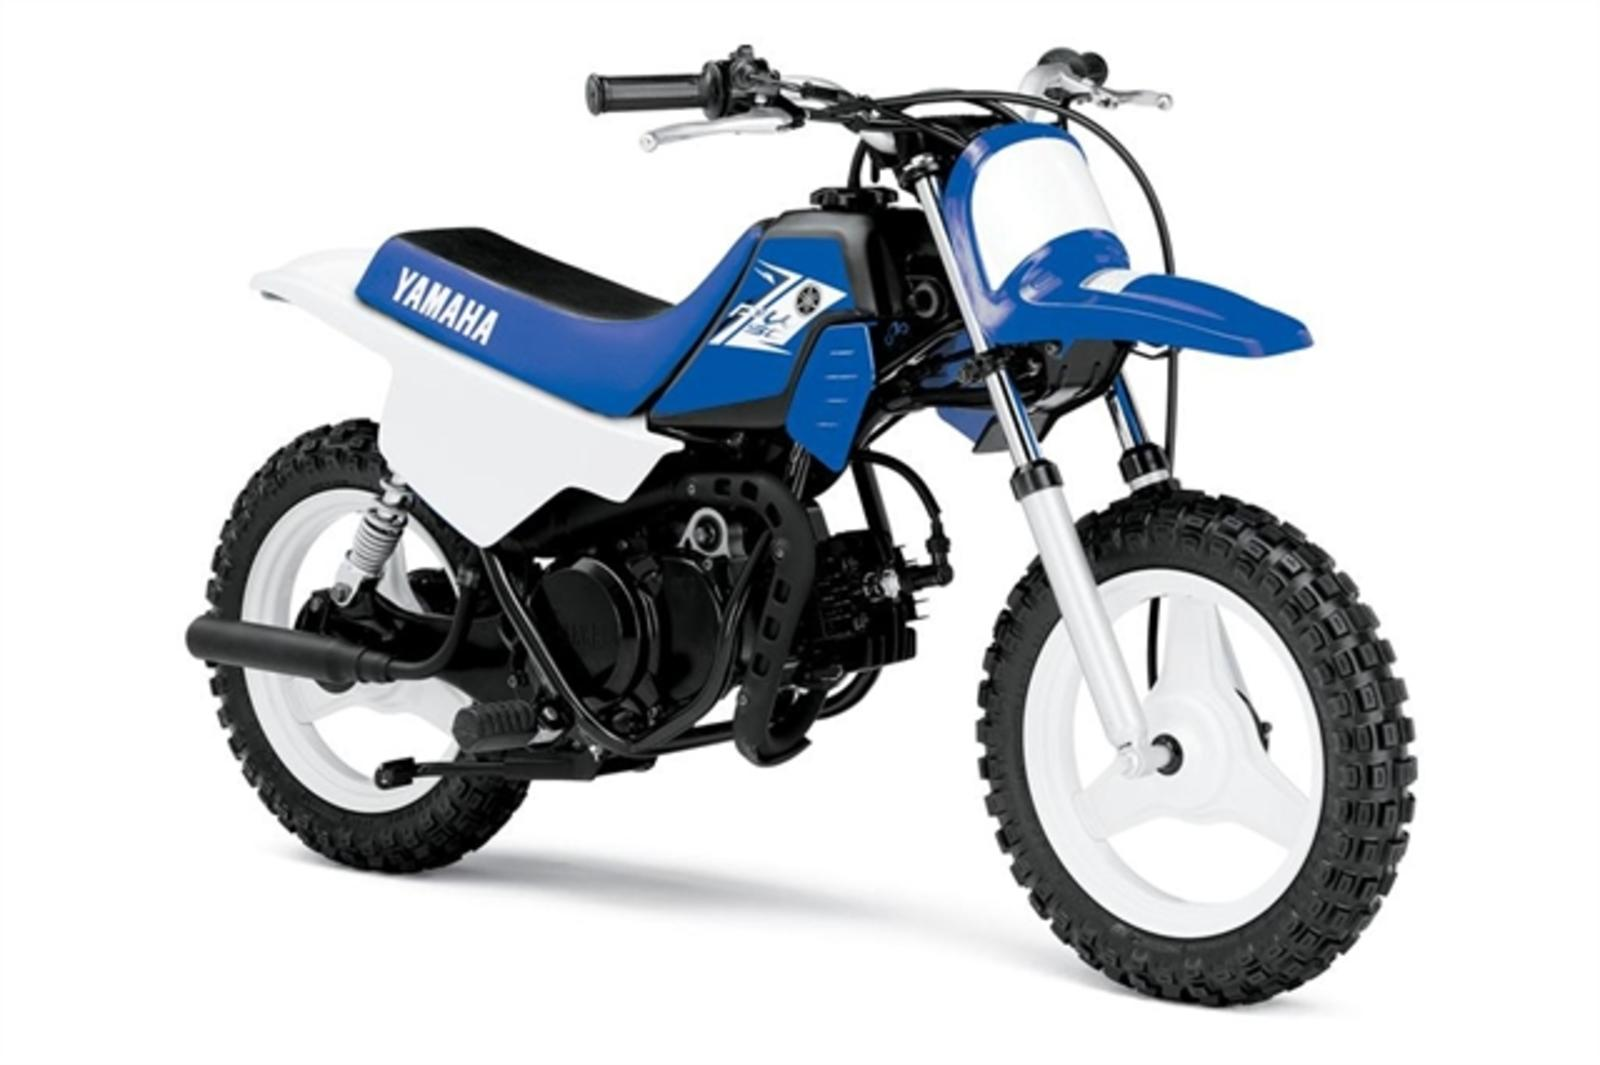 2013 yamaha pw50 review top speed. Black Bedroom Furniture Sets. Home Design Ideas